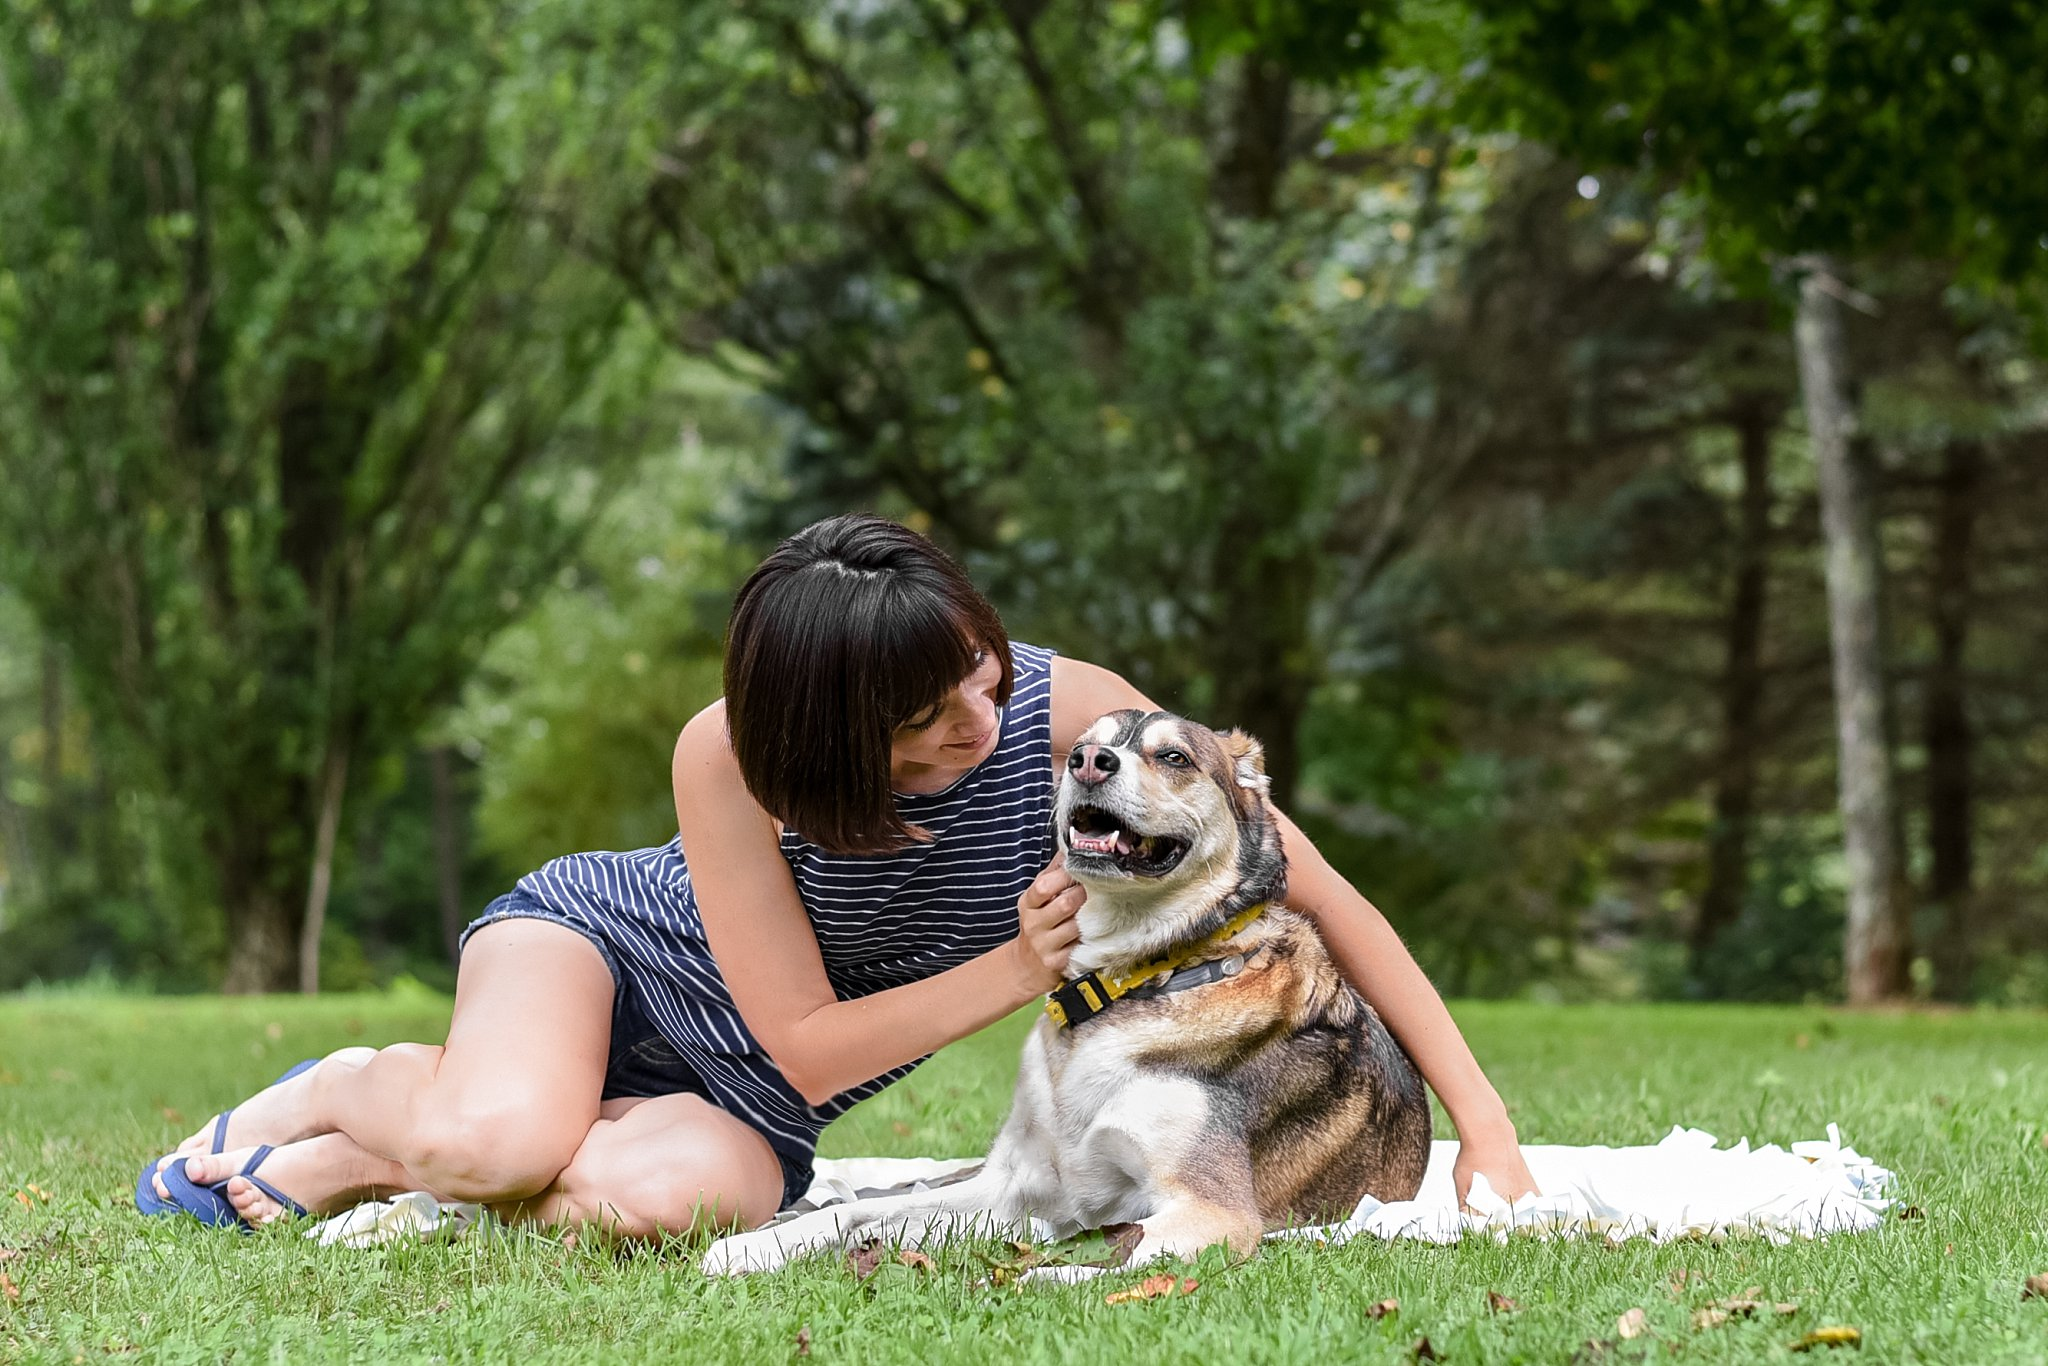 Photographer Jessica Wasik cuddling her dog Hunter on a blanket in a grassy area